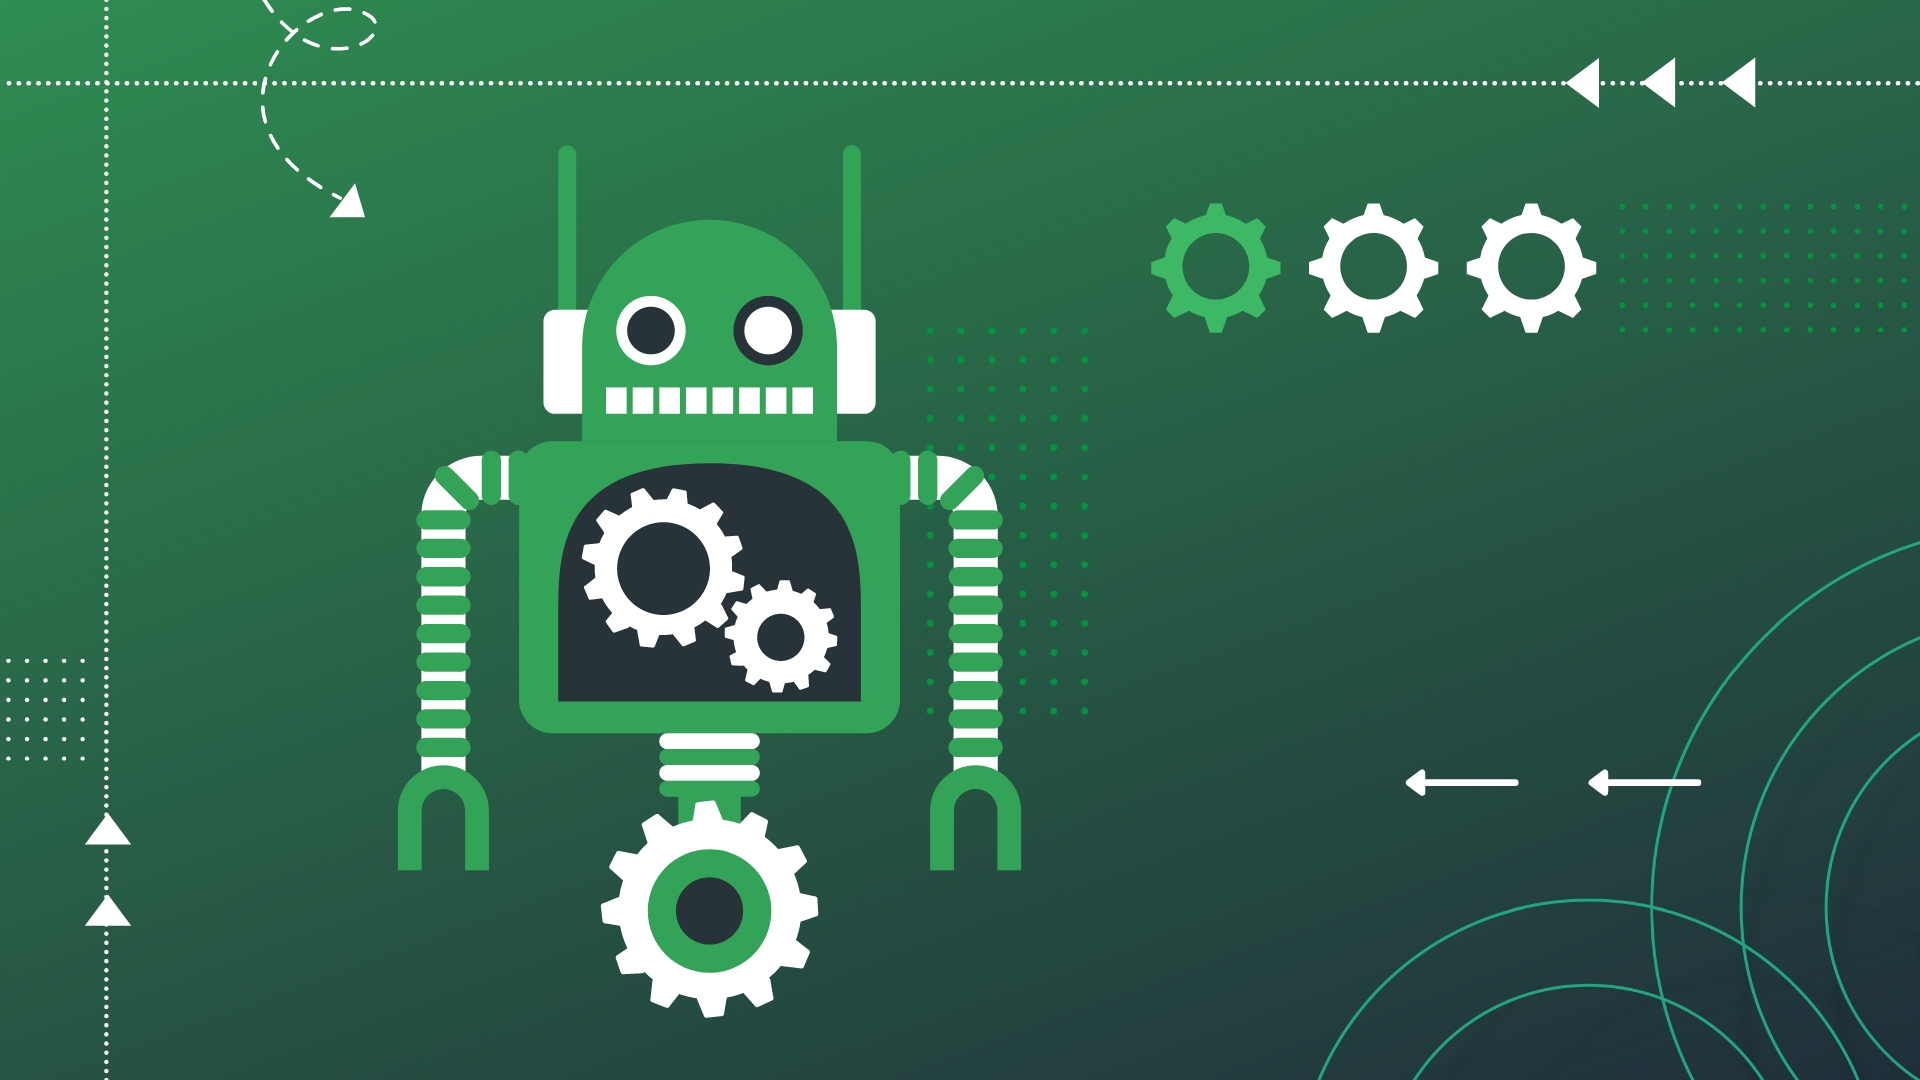 Robotic Process Automation and Cognitive Automation: What's the Difference